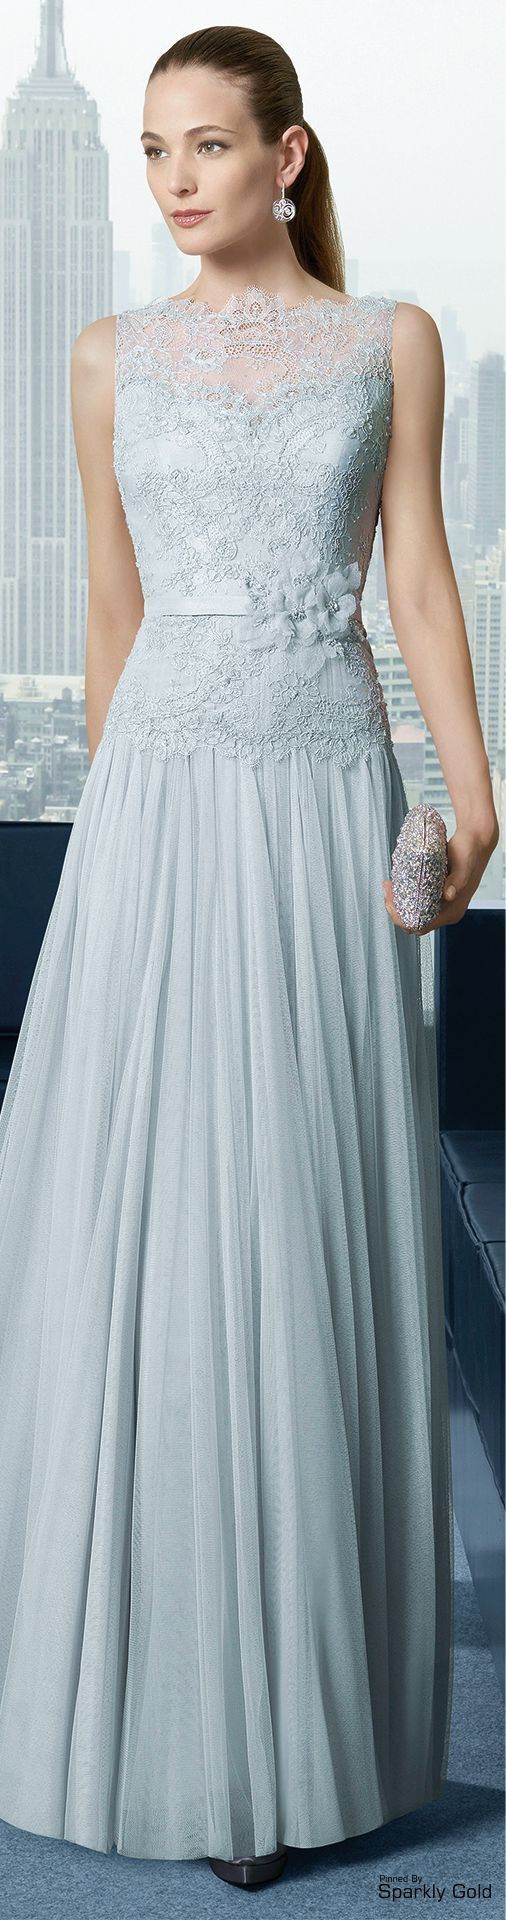 856 best Evening Gown images on Pinterest